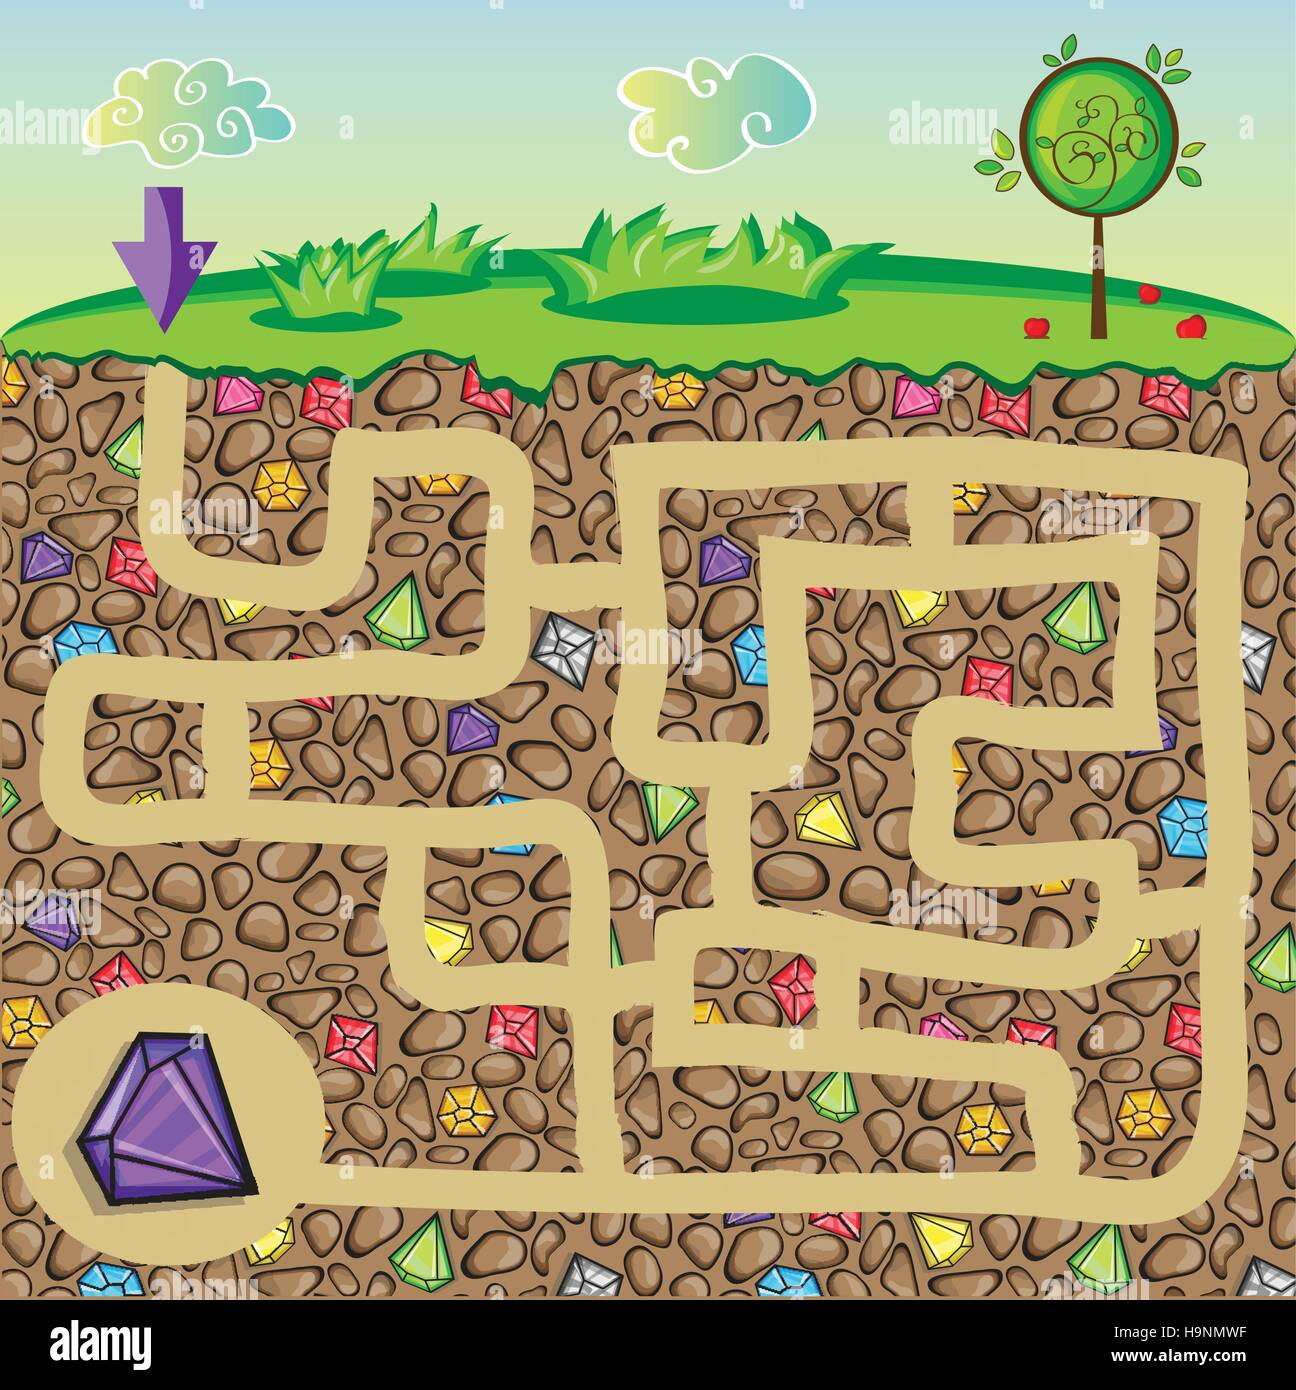 Maze for children - nature, stones and precious stones under the ground - get the path to the diamond - Stock Image